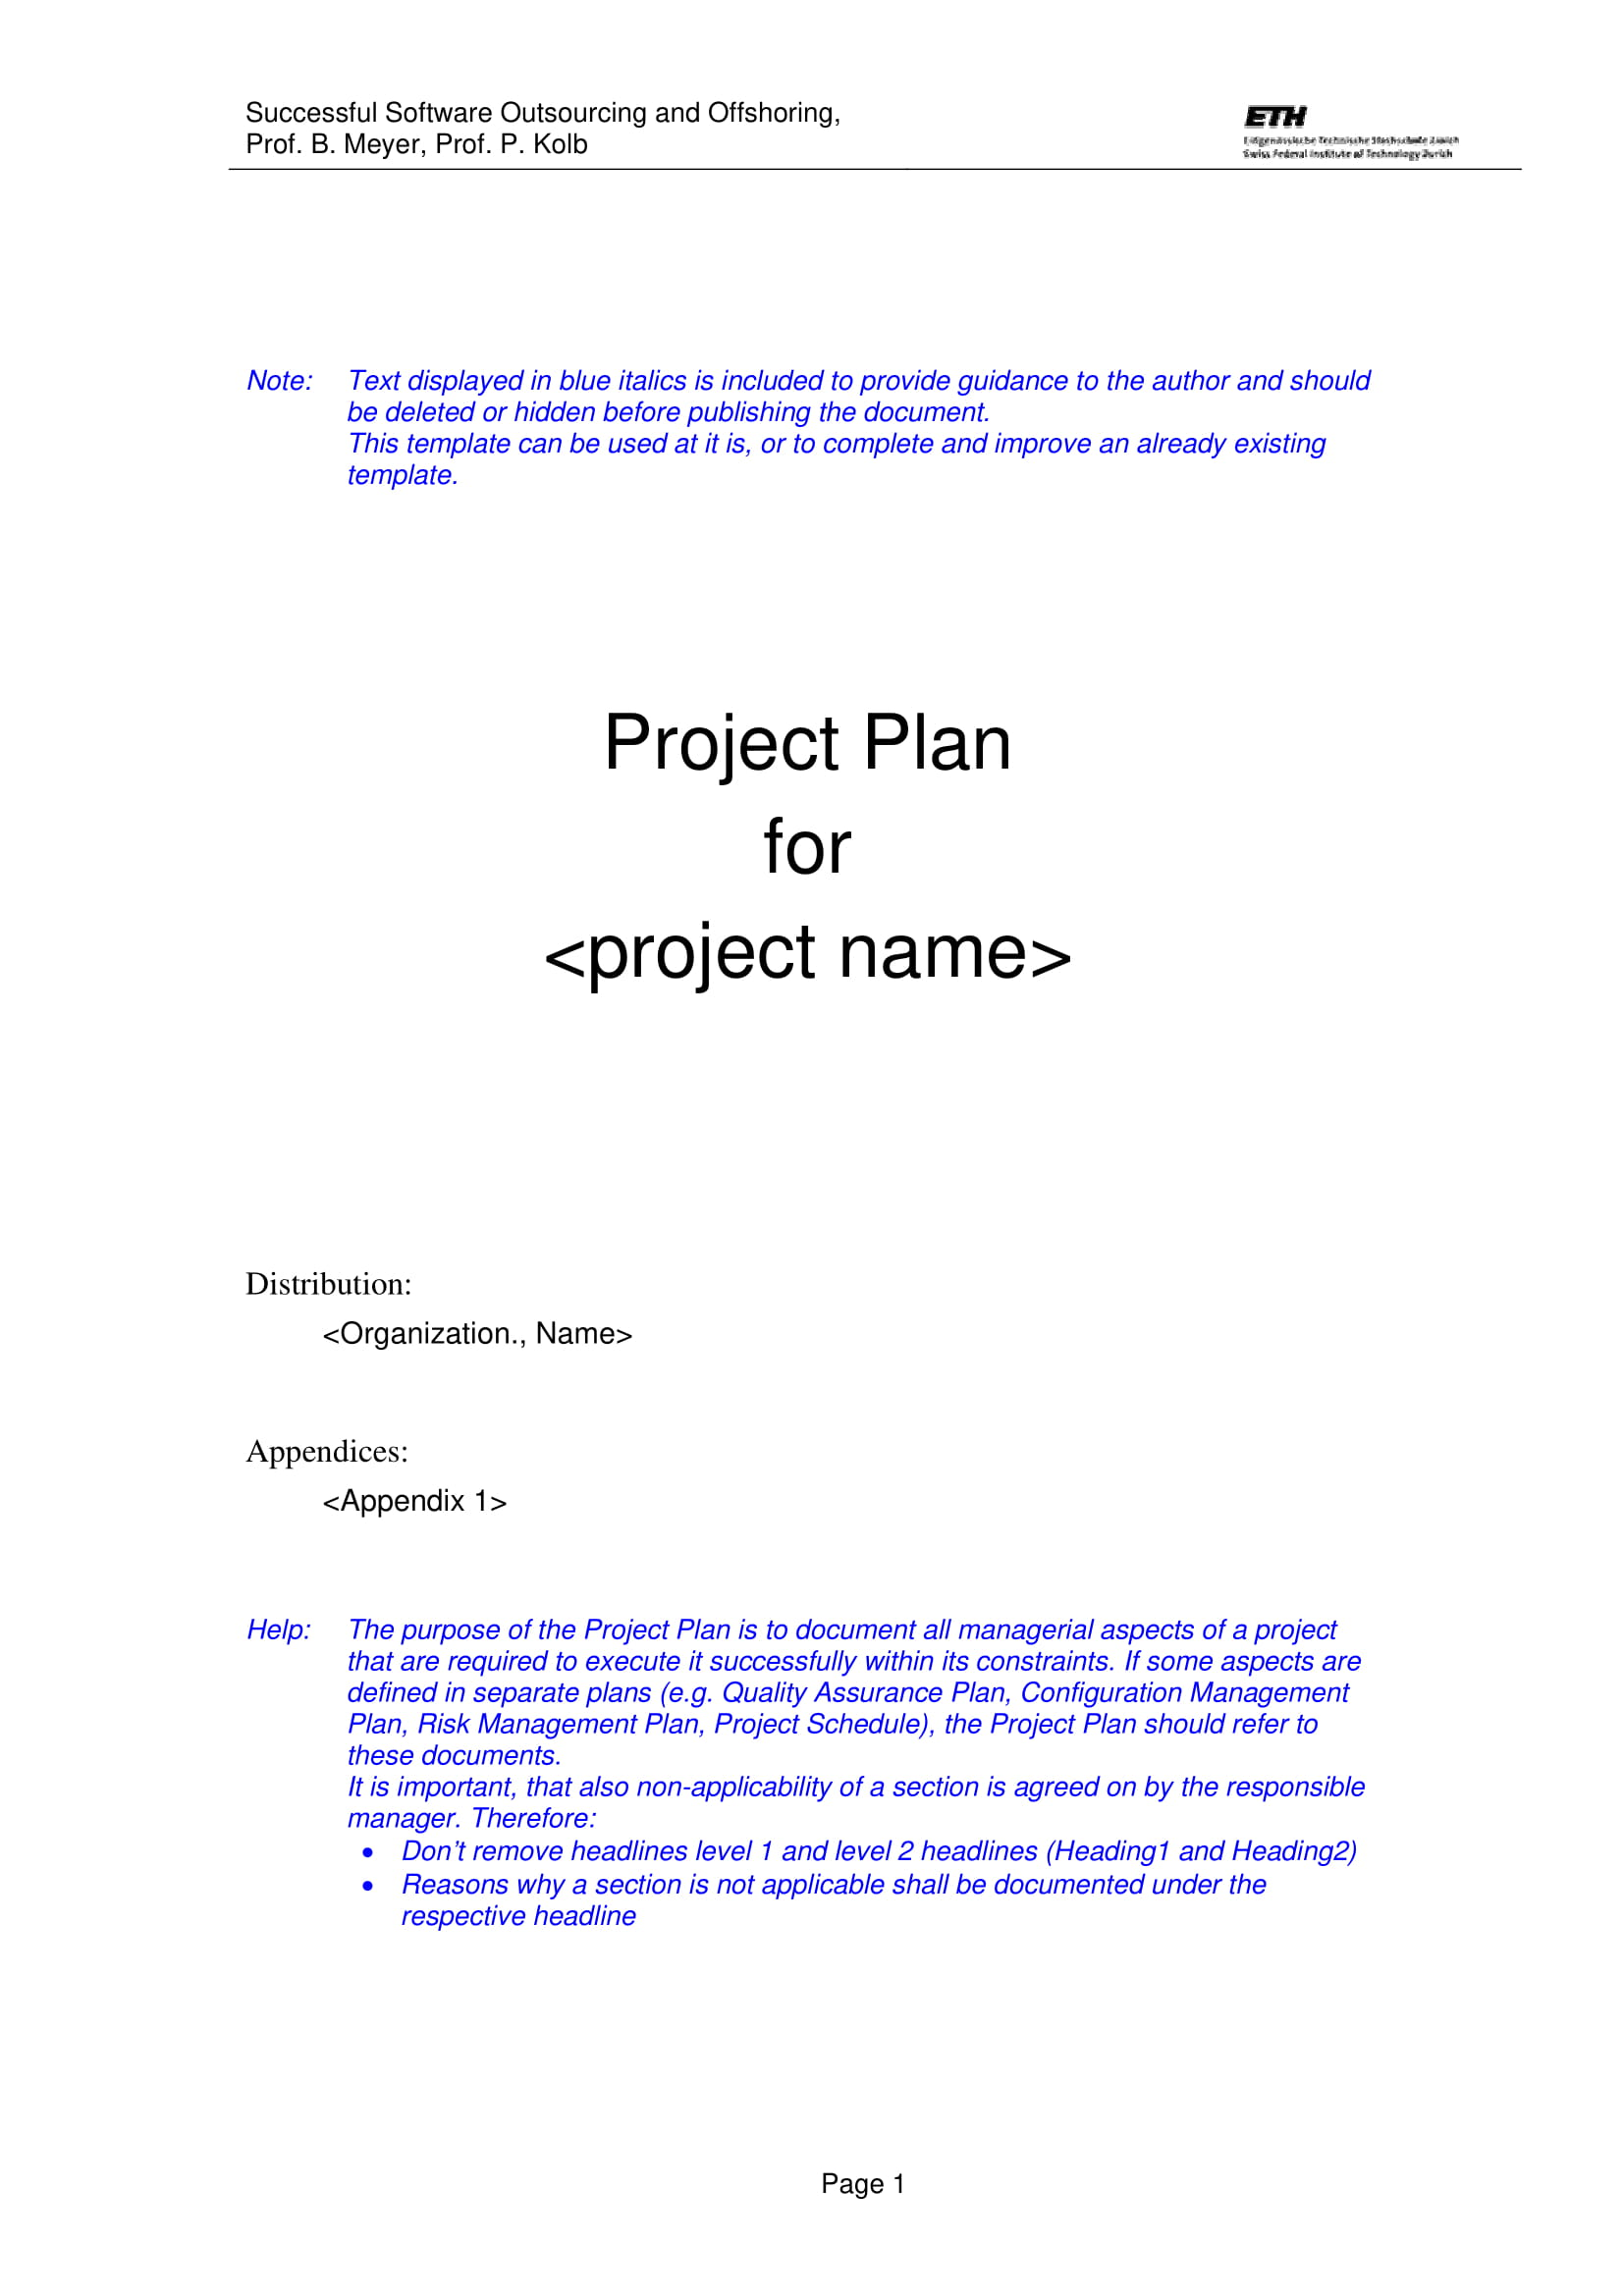 project plan for managing project resources and processes template example 01